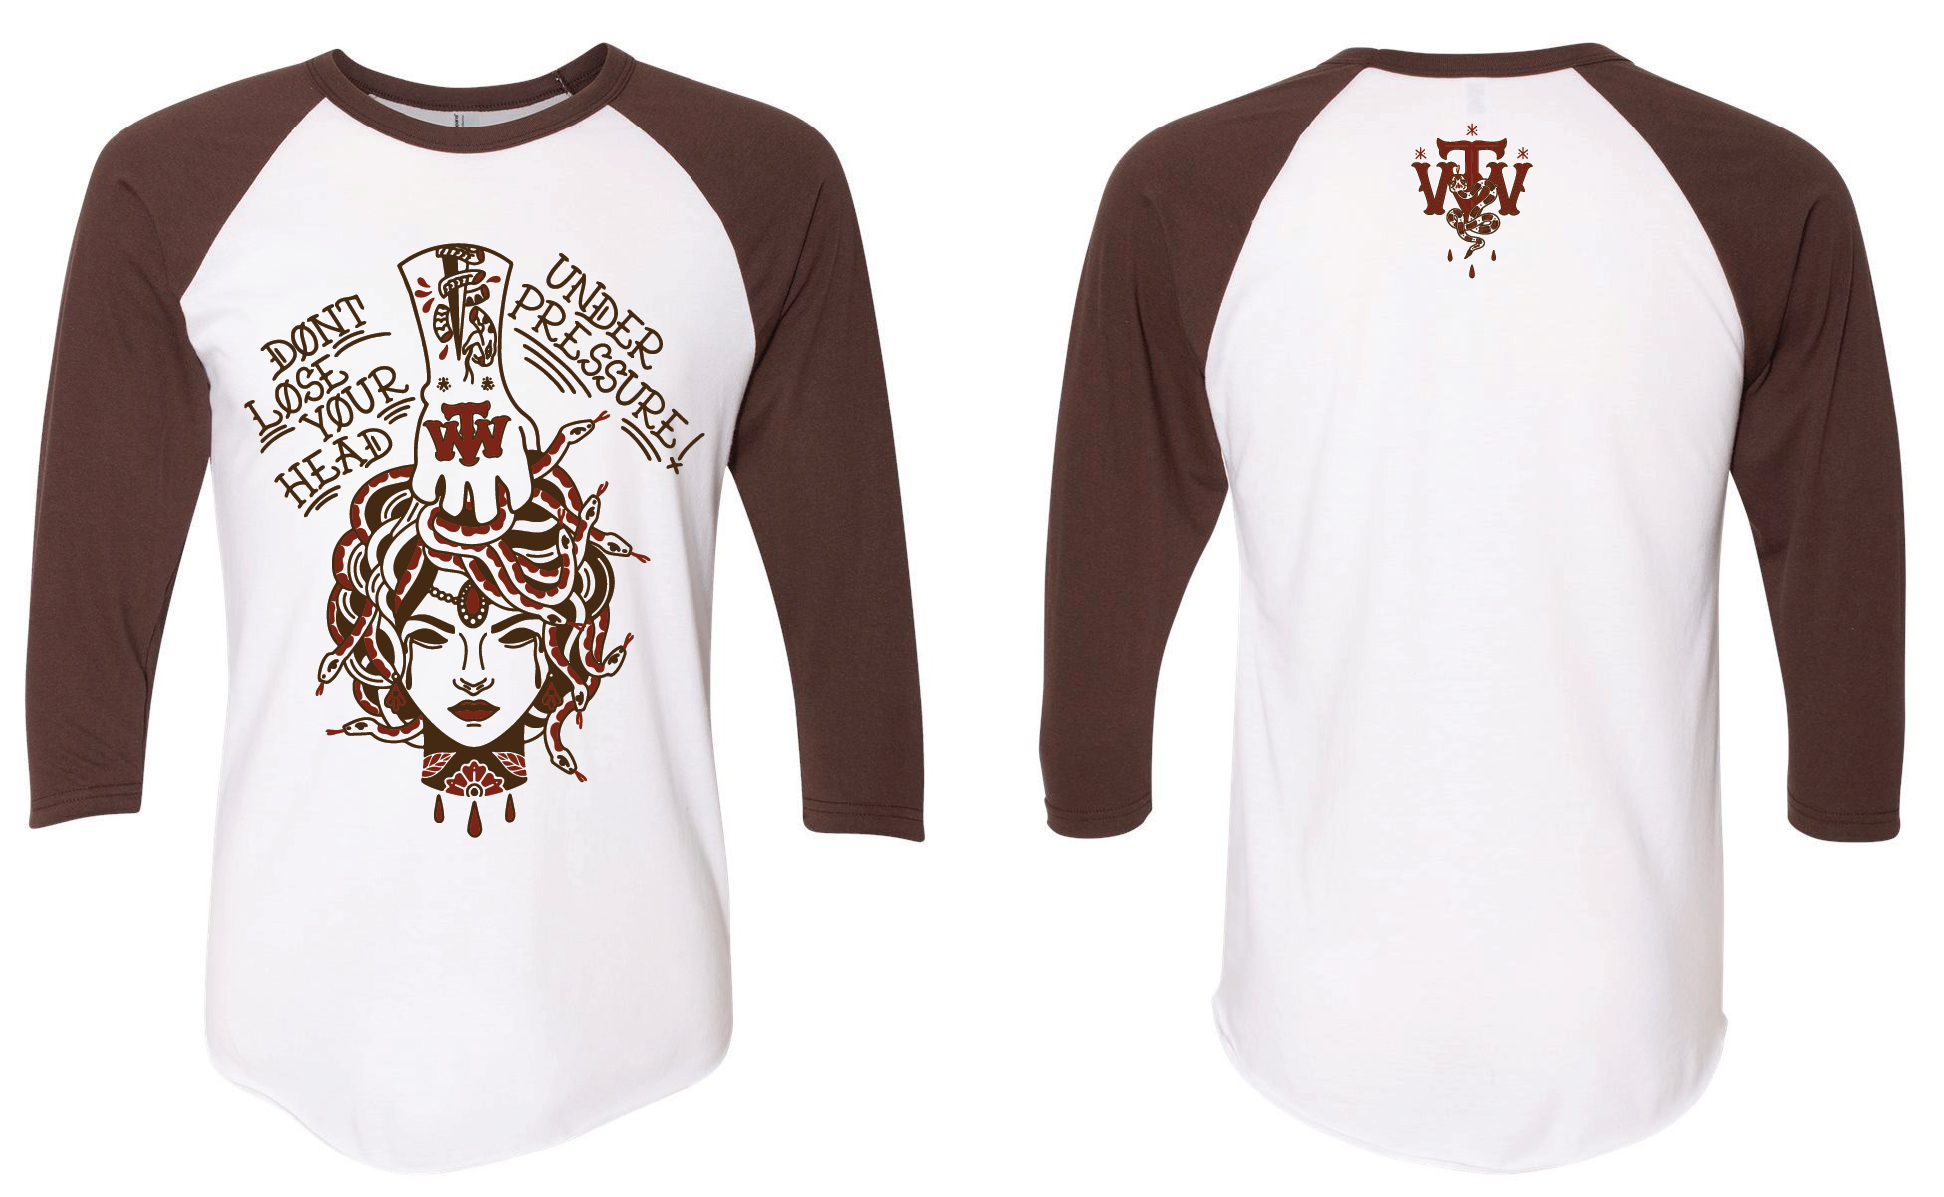 Medusa Raglan Baseball Tee (Brown)